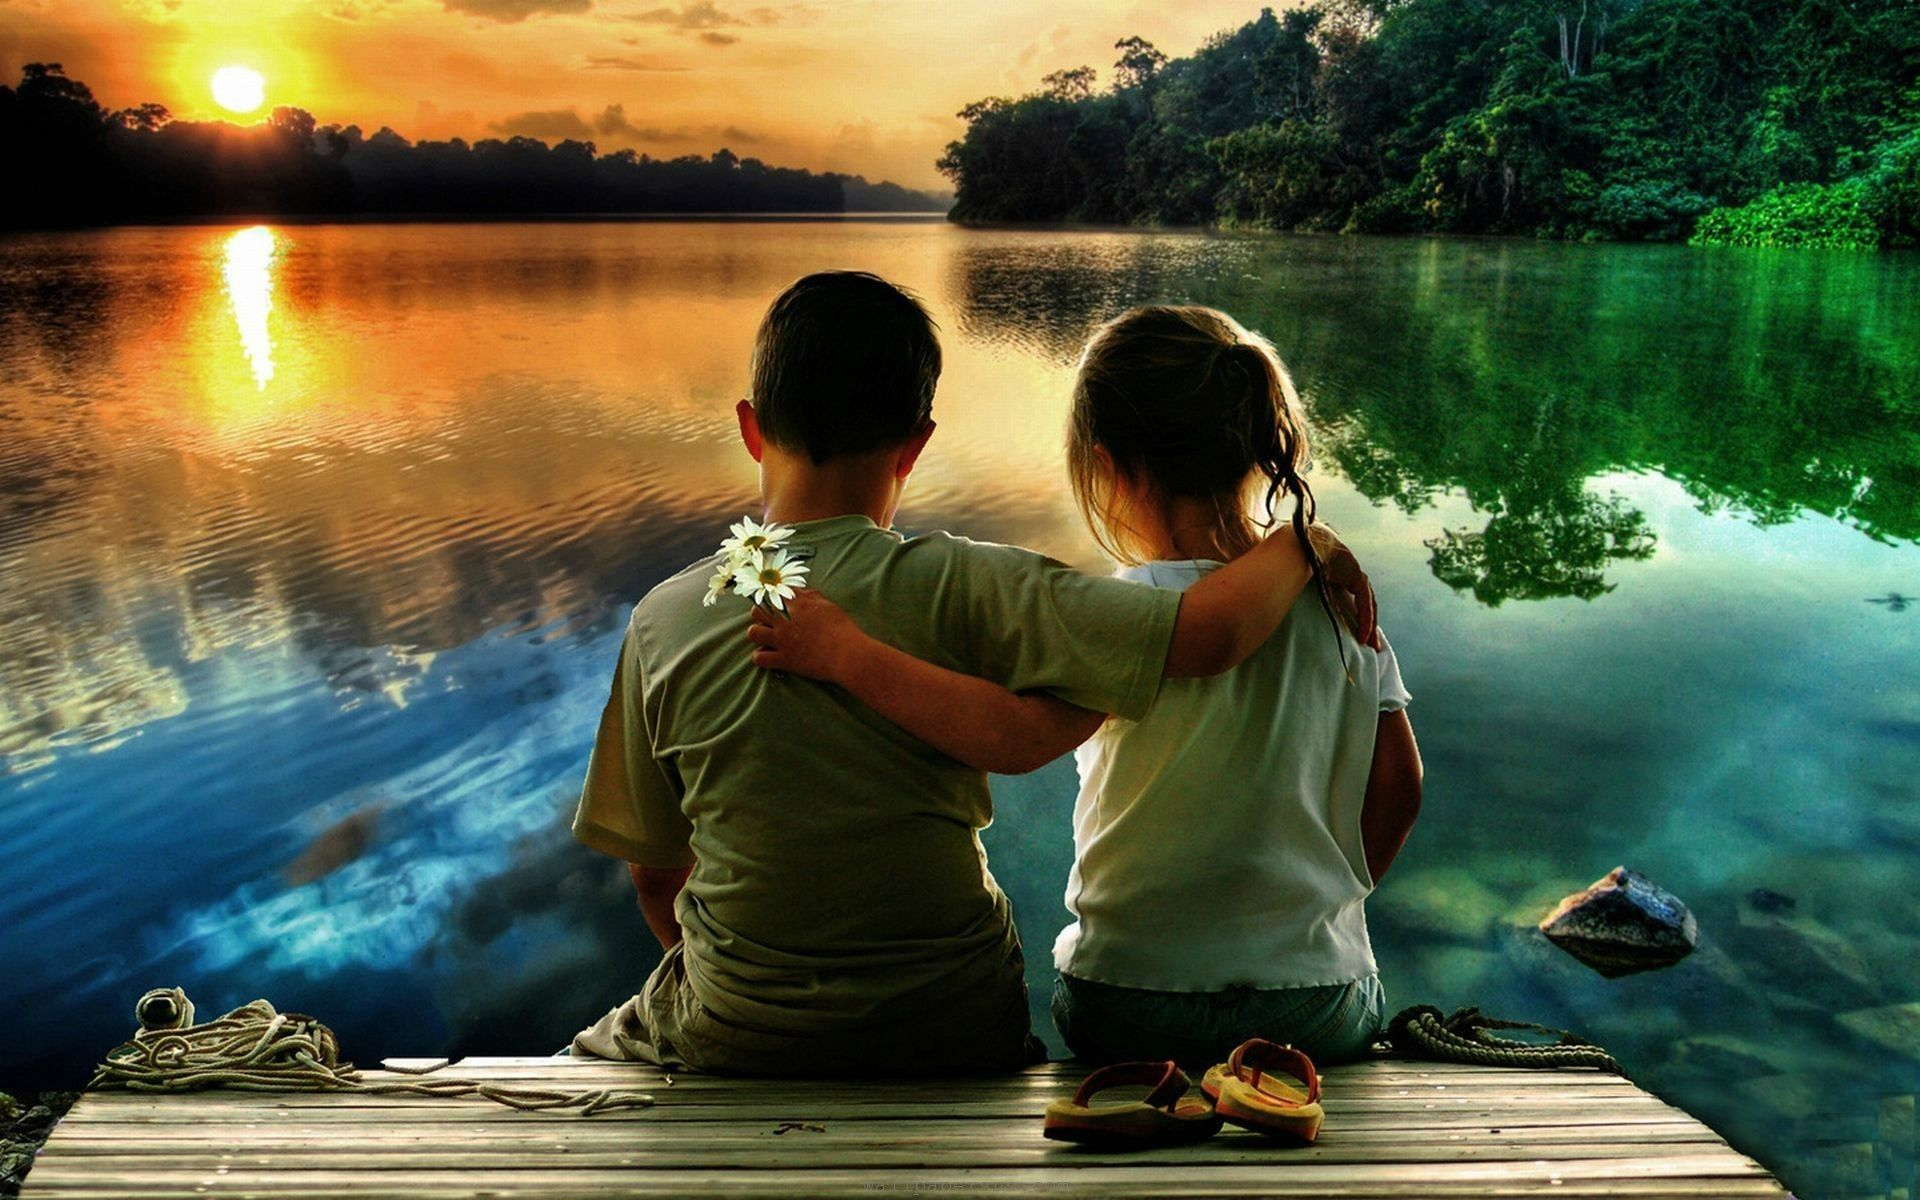 childhood friendship boy and girl | love hd wallpapers free download